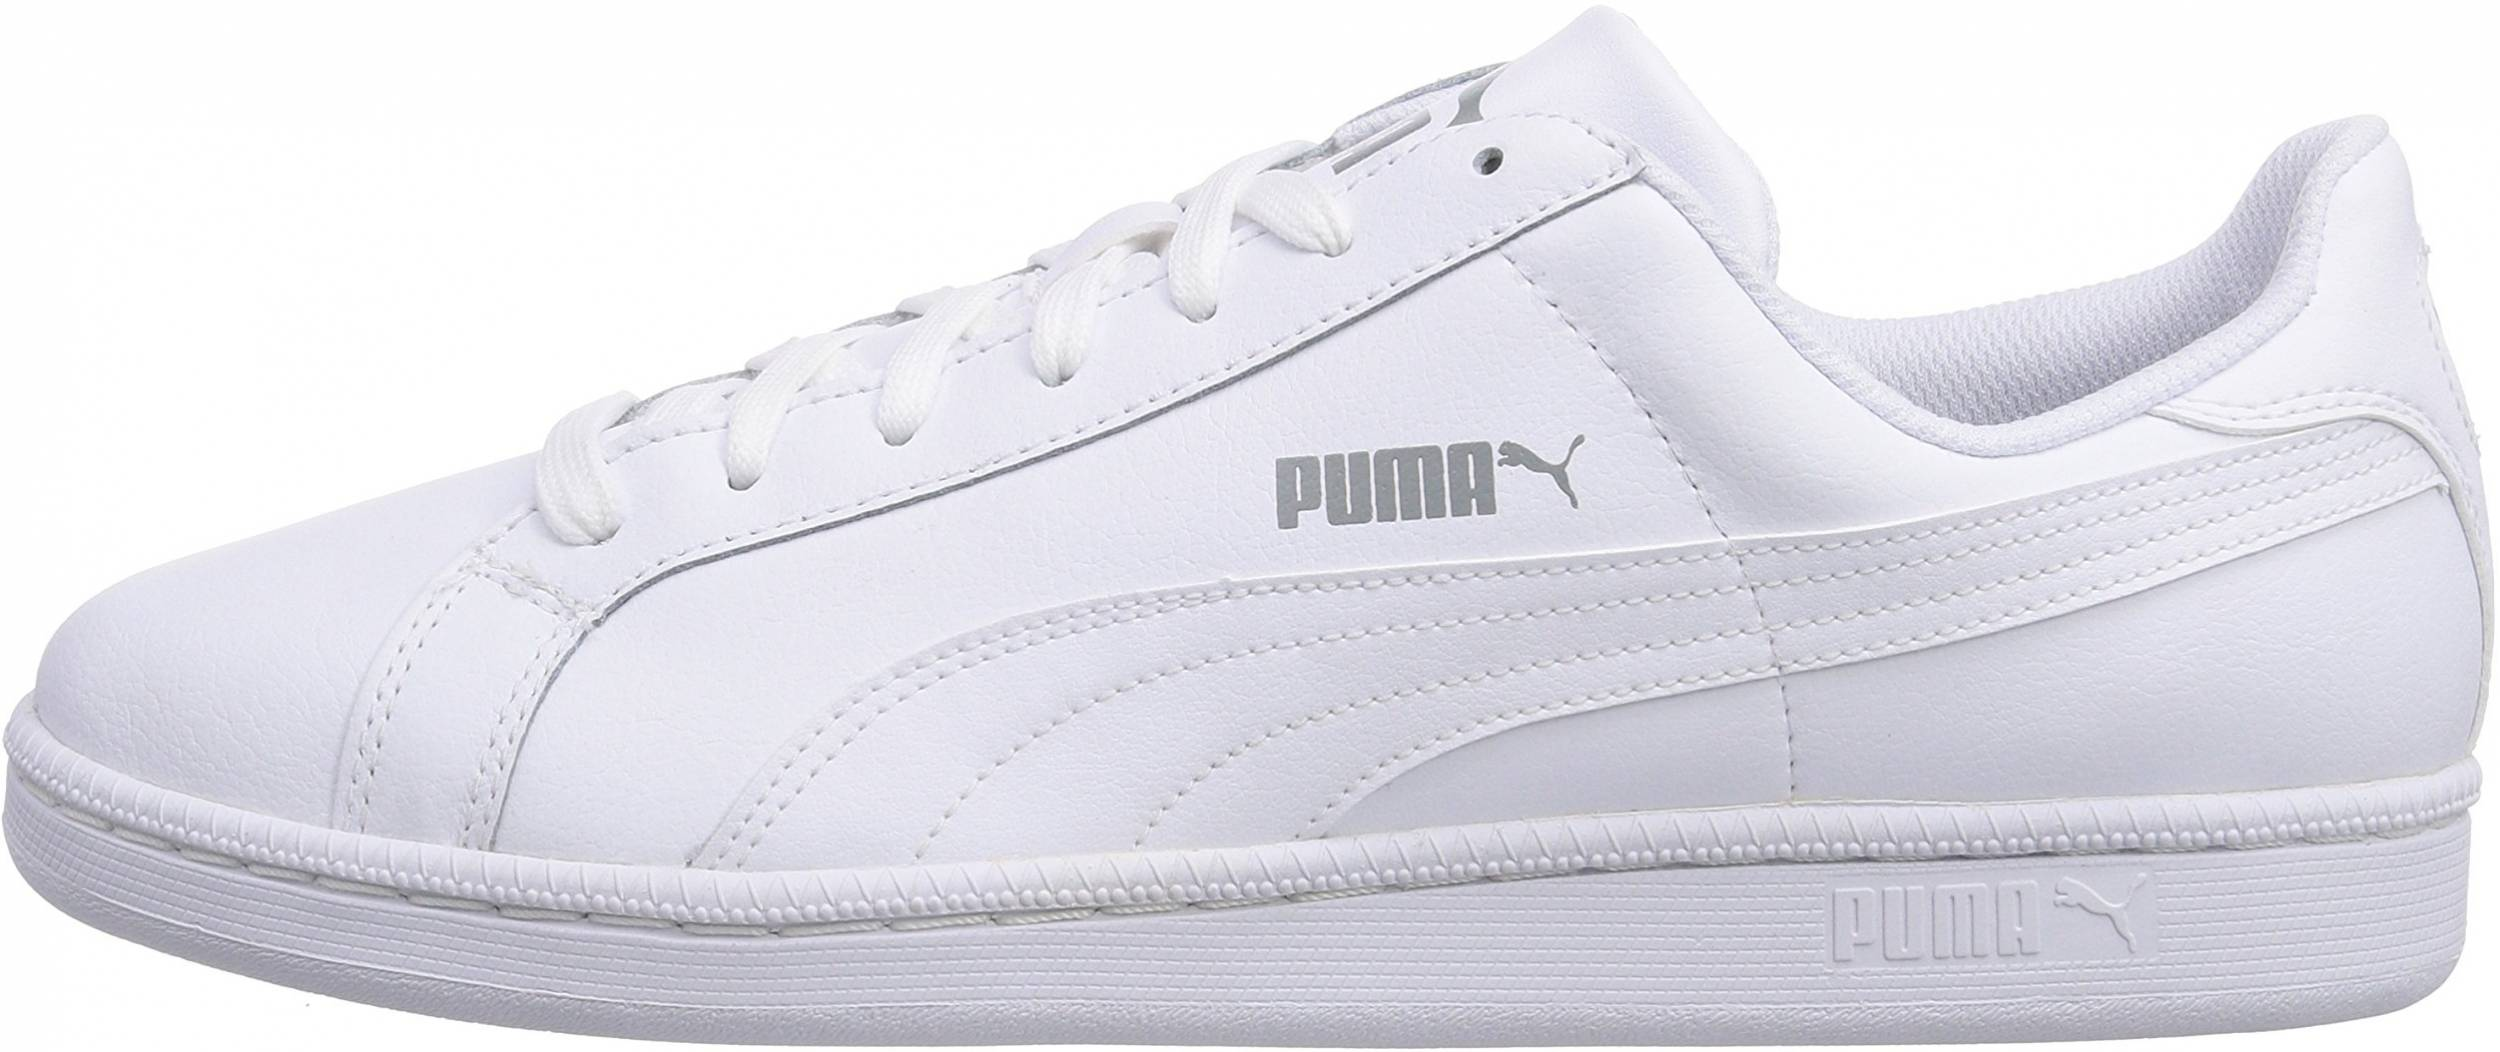 Save 67% on White Puma Sneakers (80